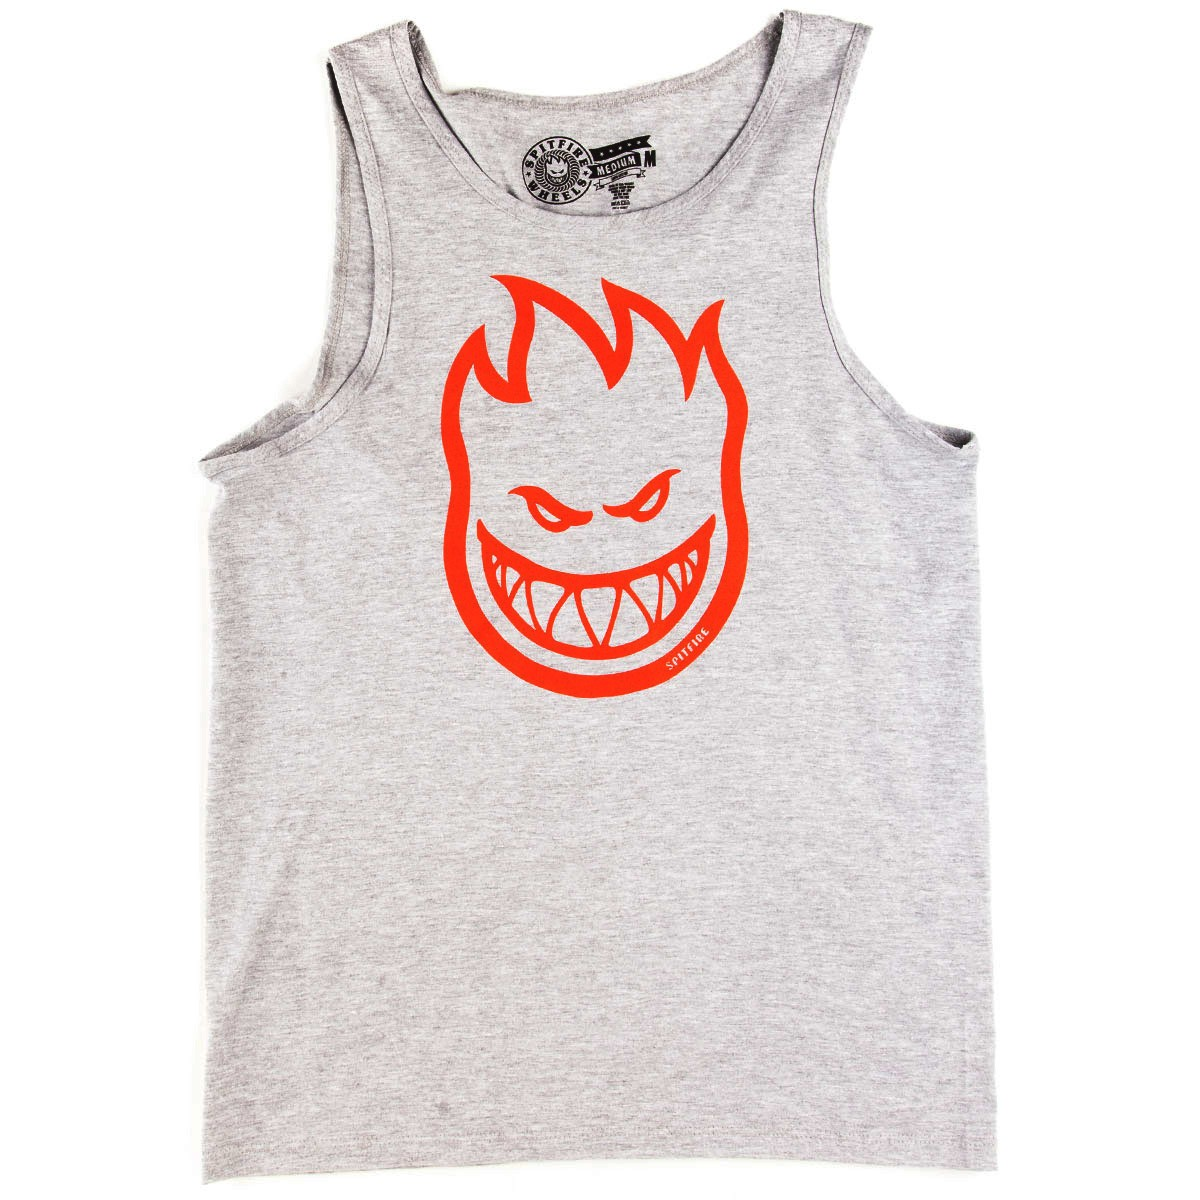 Spitfire Bighead Tank Top - Athletic Heather